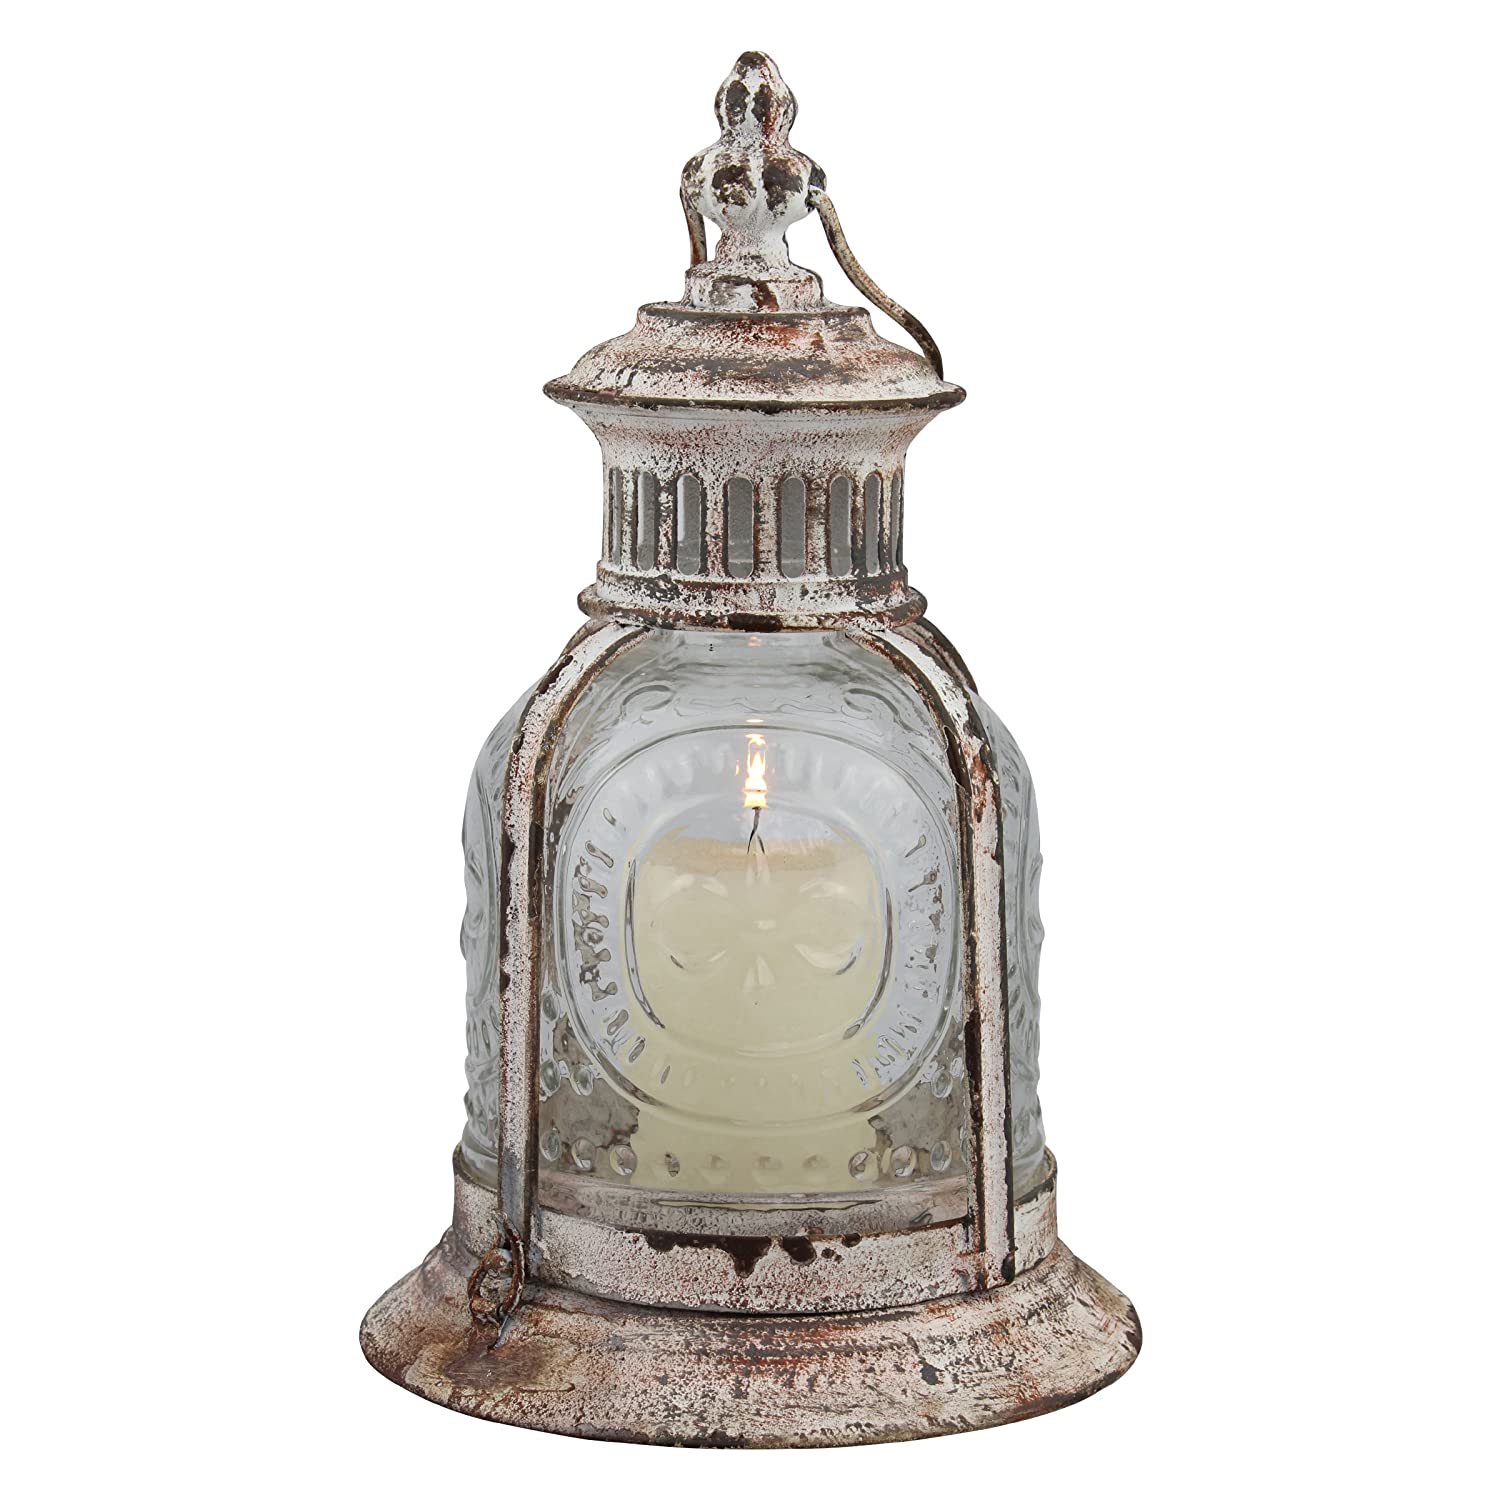 Stonebriar Antique White Metal Candle Lantern, Use As Decoration for Birthday Parties, a Rustic Wedding Centerpiece, or Create a Relaxing Spa Setting, For Indoor or Outdoor Use CKK Home Décor SB-5021A